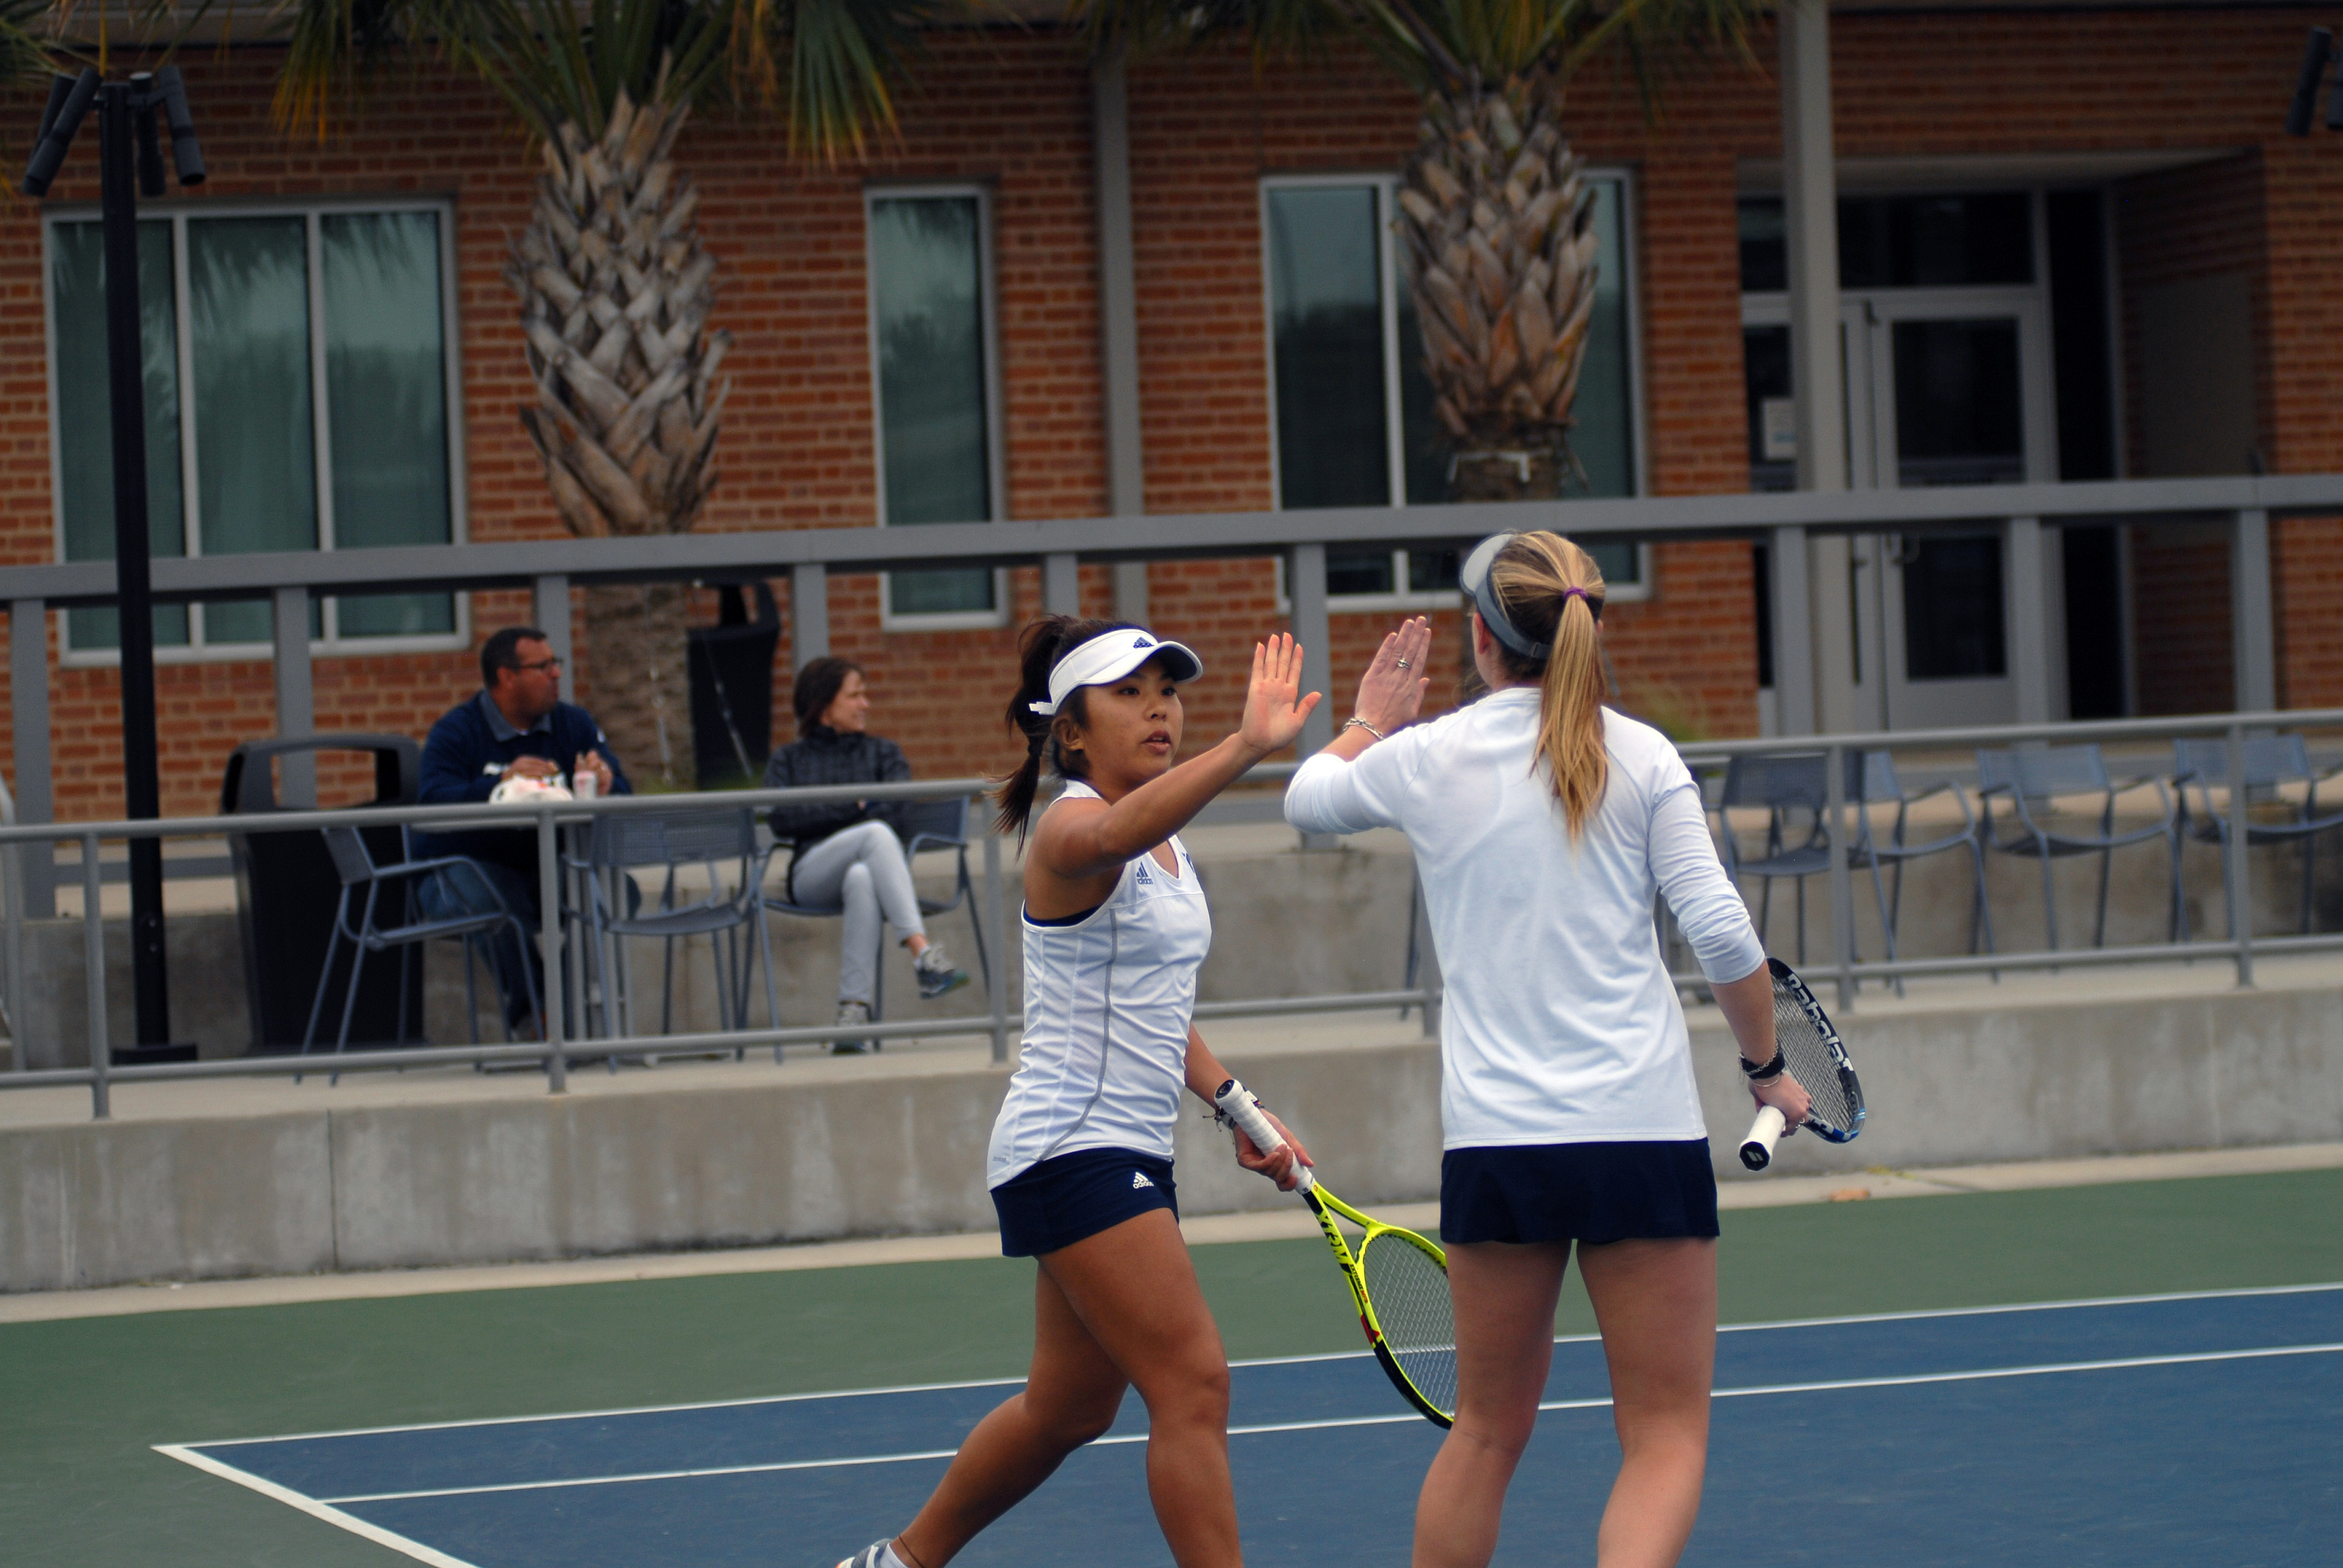 Wendy Zhang and Lindsey Hodge fought back from a late deficit to capture the doubles point for the Owls.